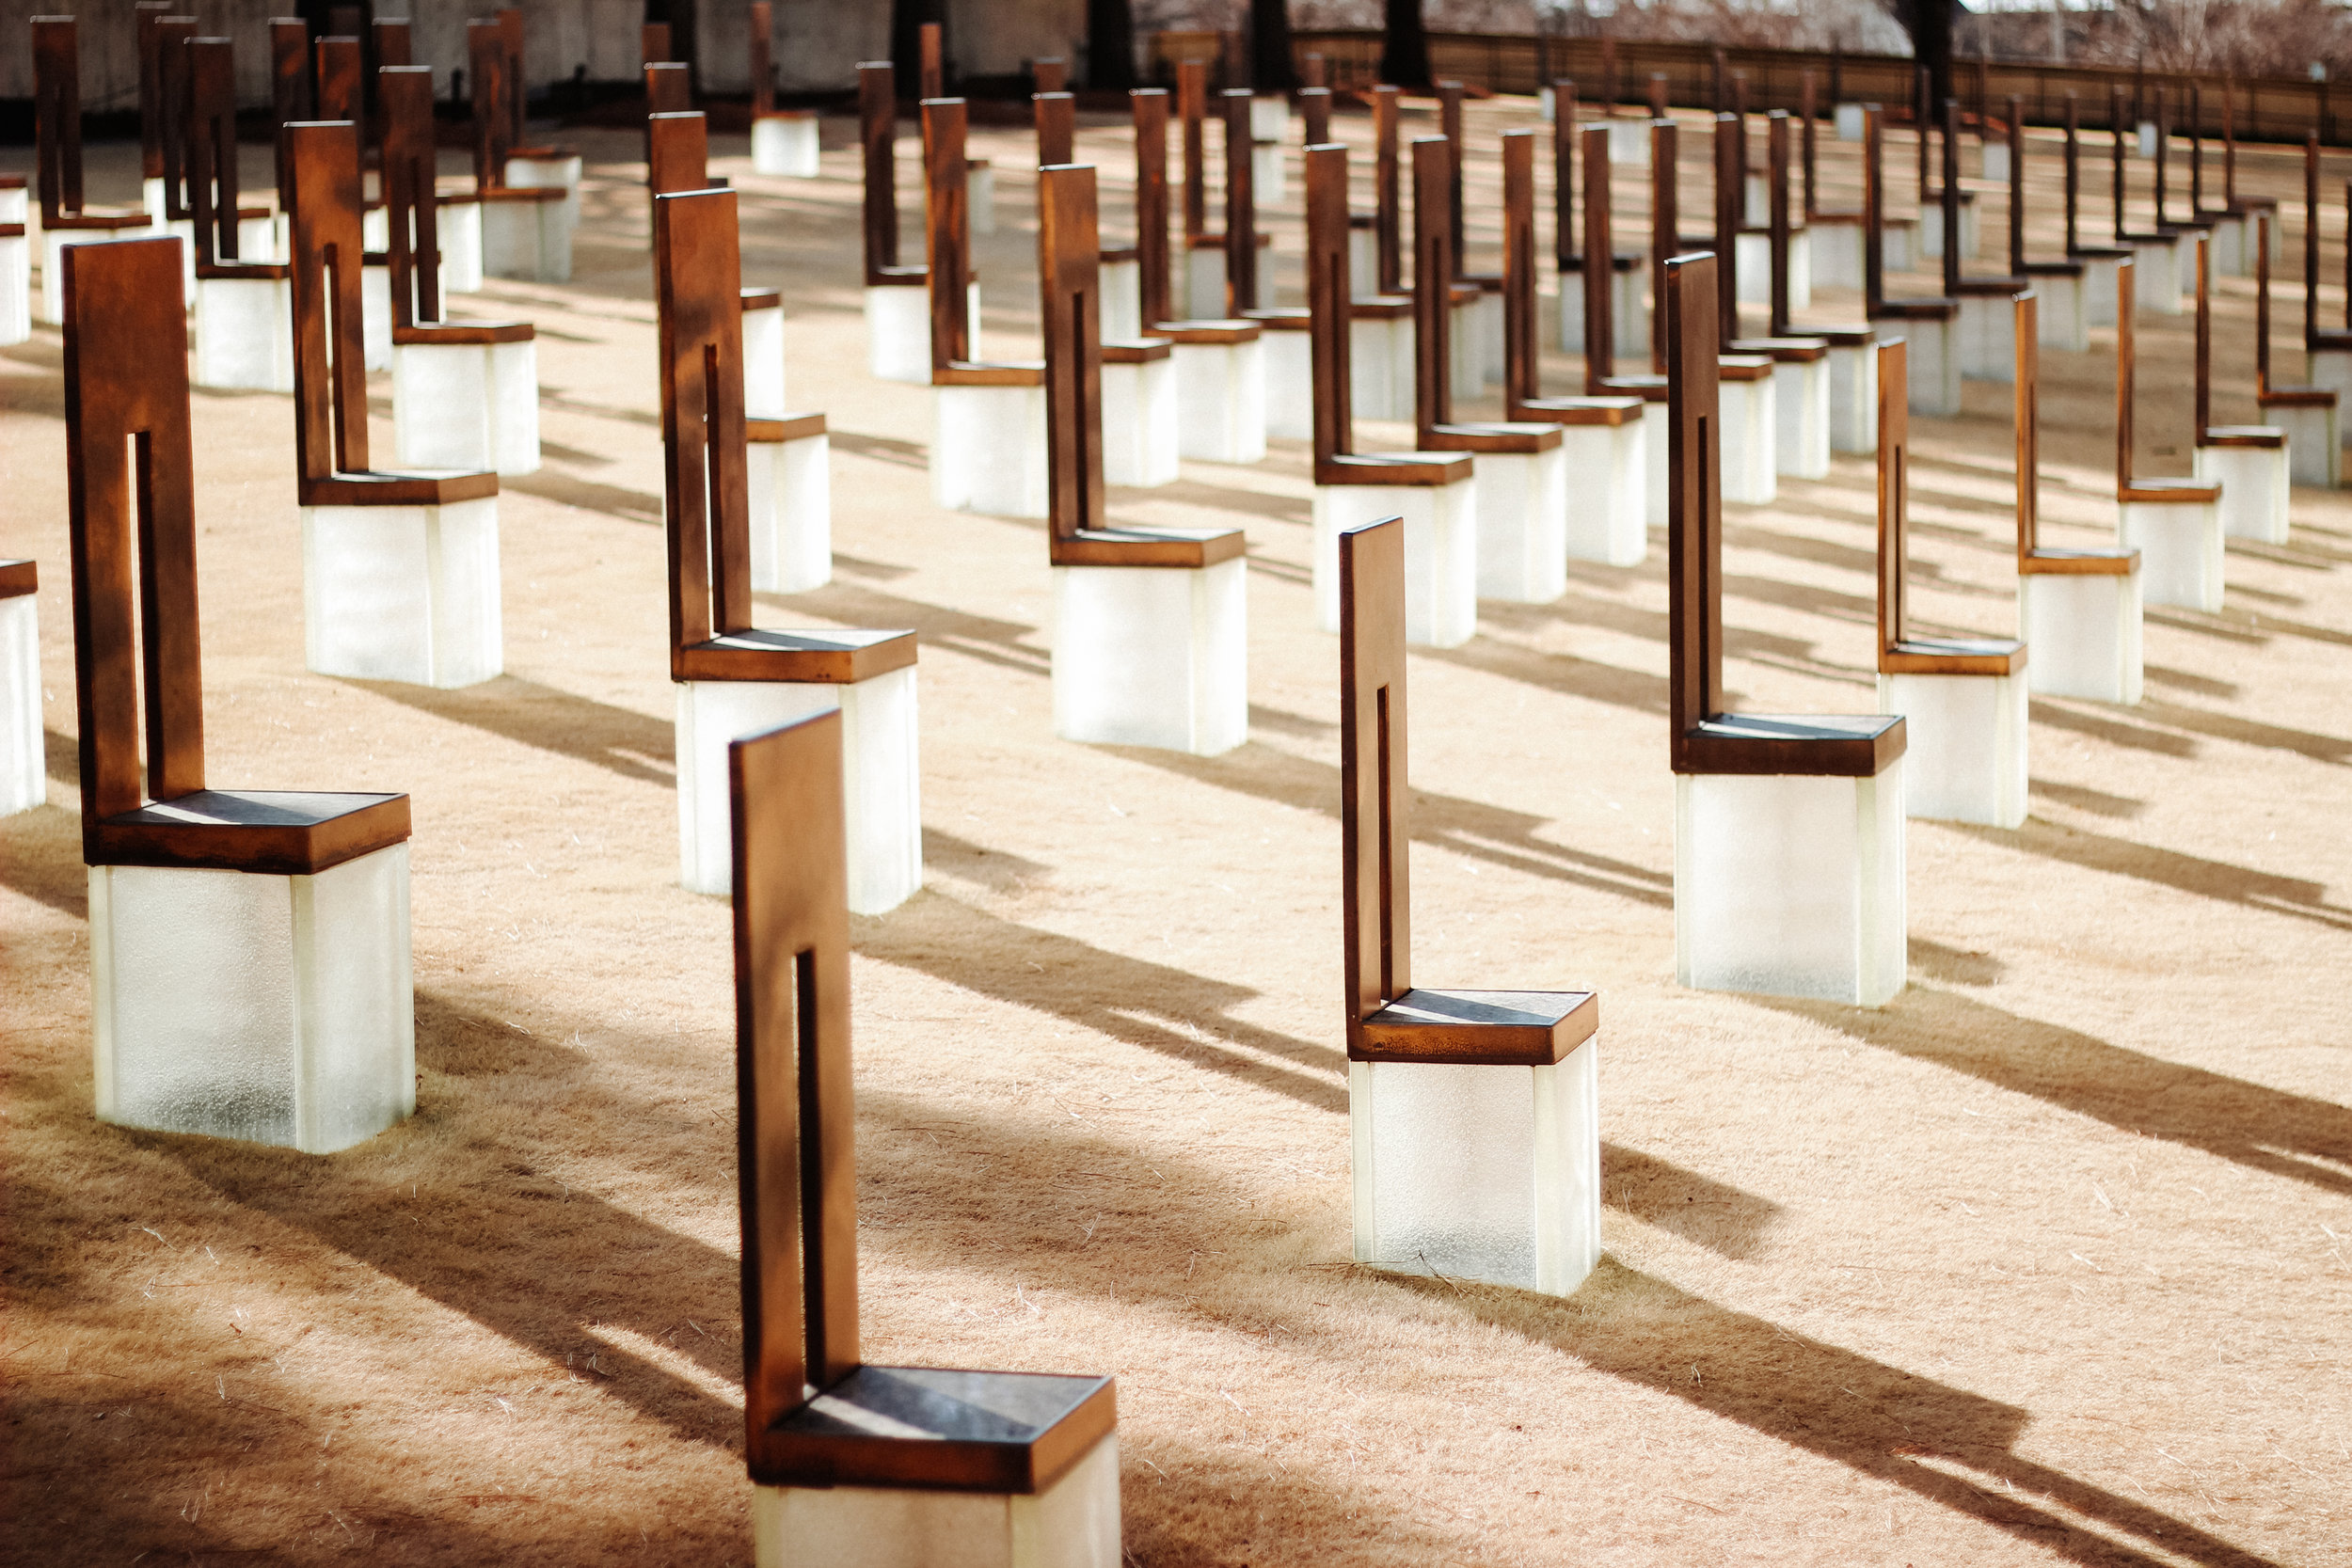 Each of the 168 chairs at the Oklahoma City National Memorial represents a person who was killed in the 1995 Oklahoma City bombing.